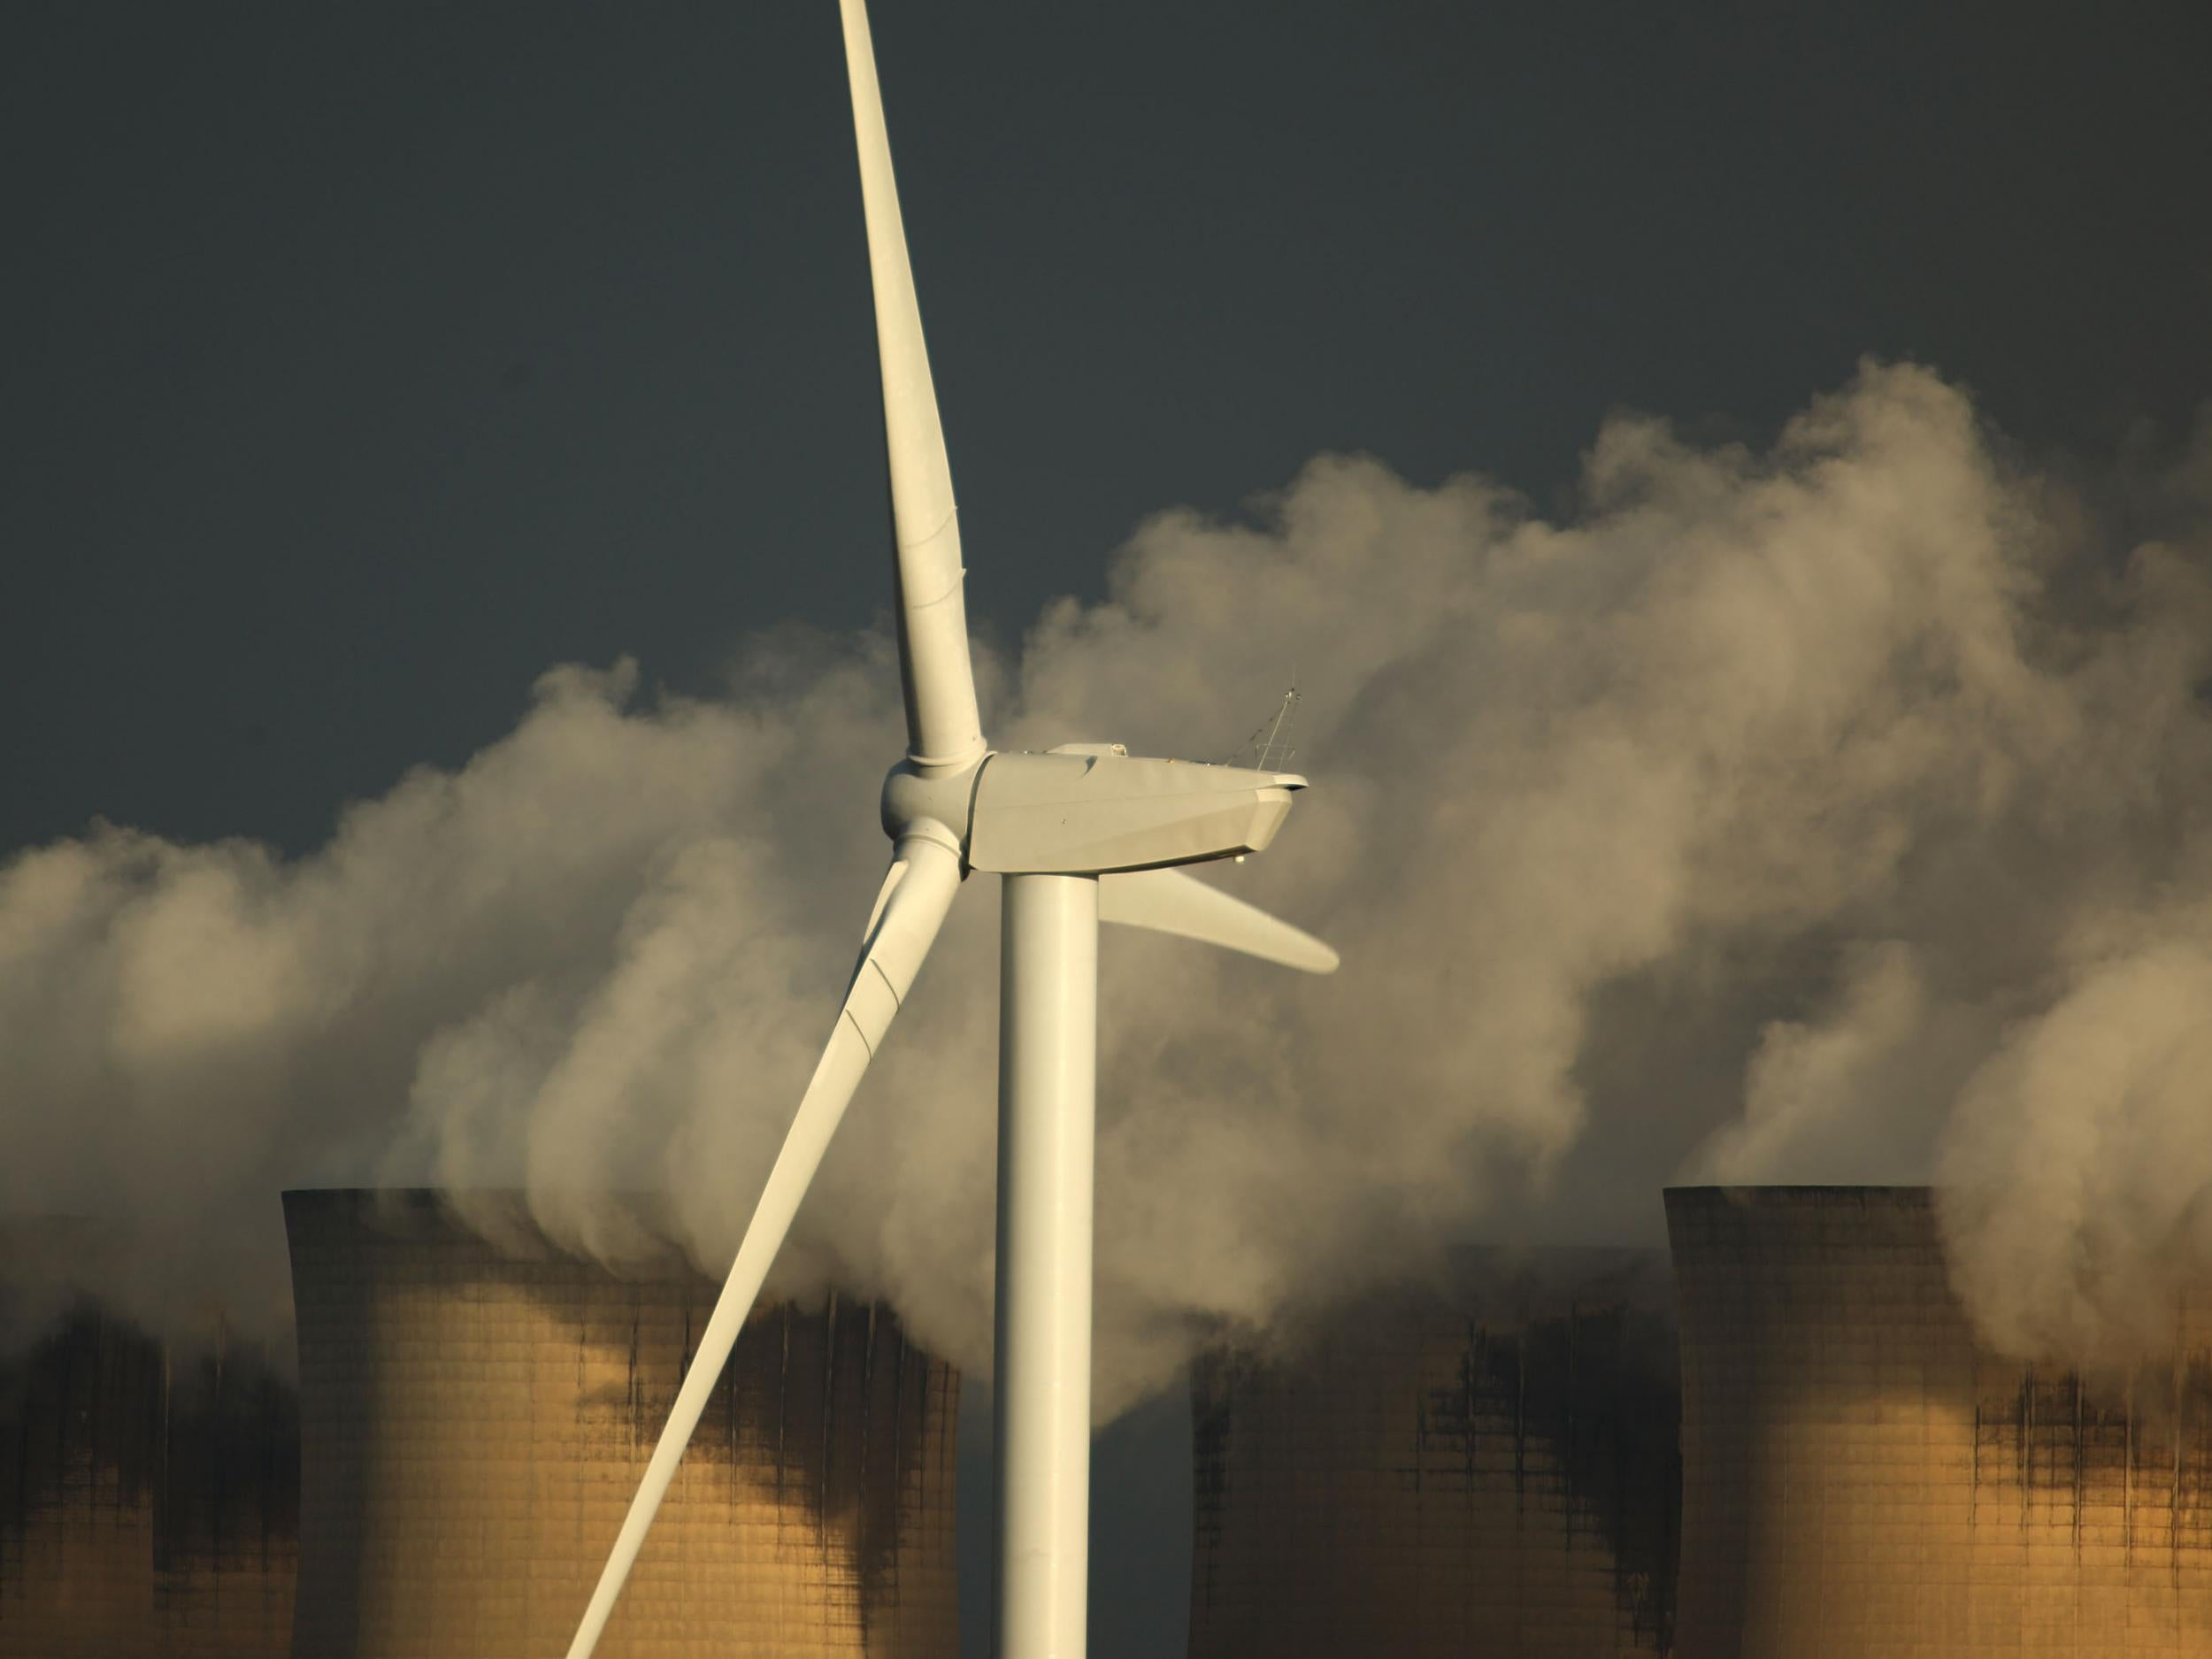 UK's biggest power plant to go carbon negative by 2030, but experts question if it will work